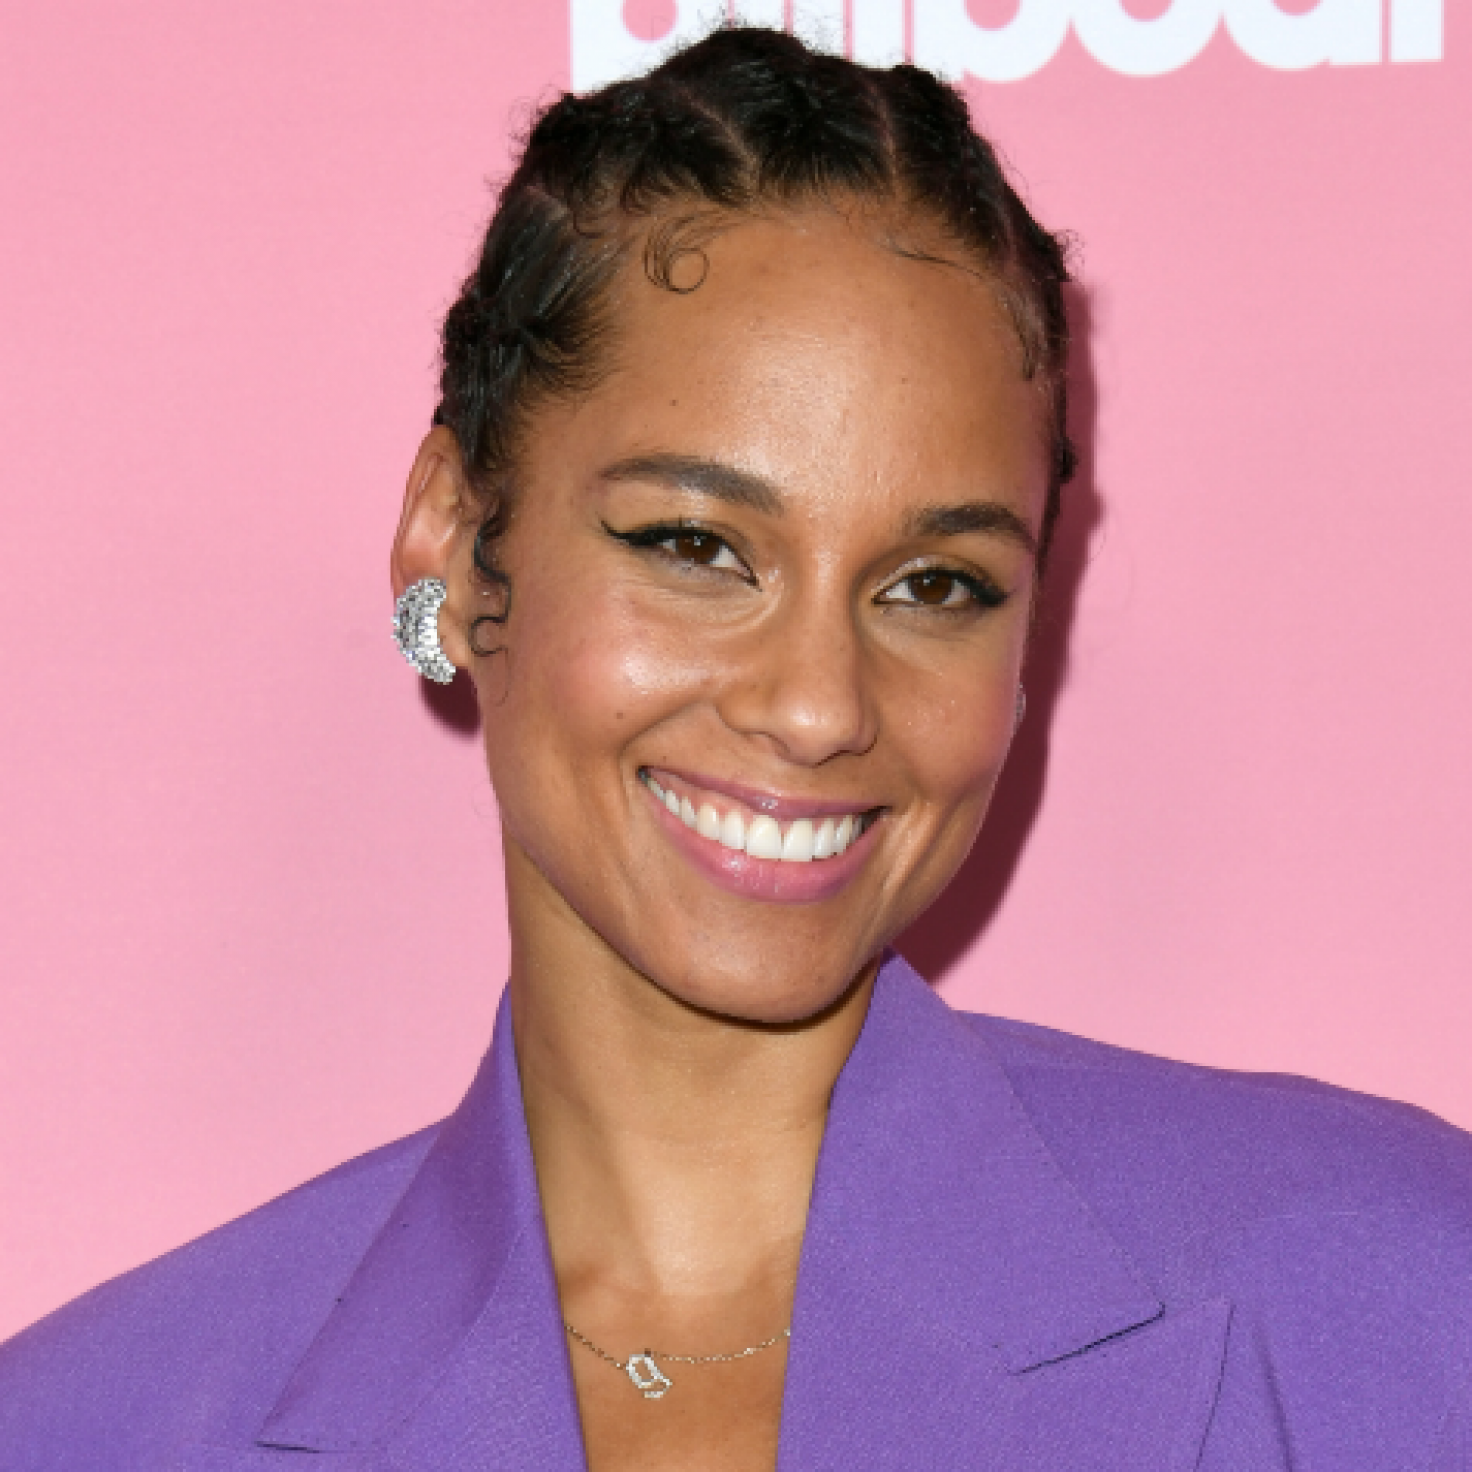 How To Get Alicia Keys's Rope Twists From 'So Done' Music Video